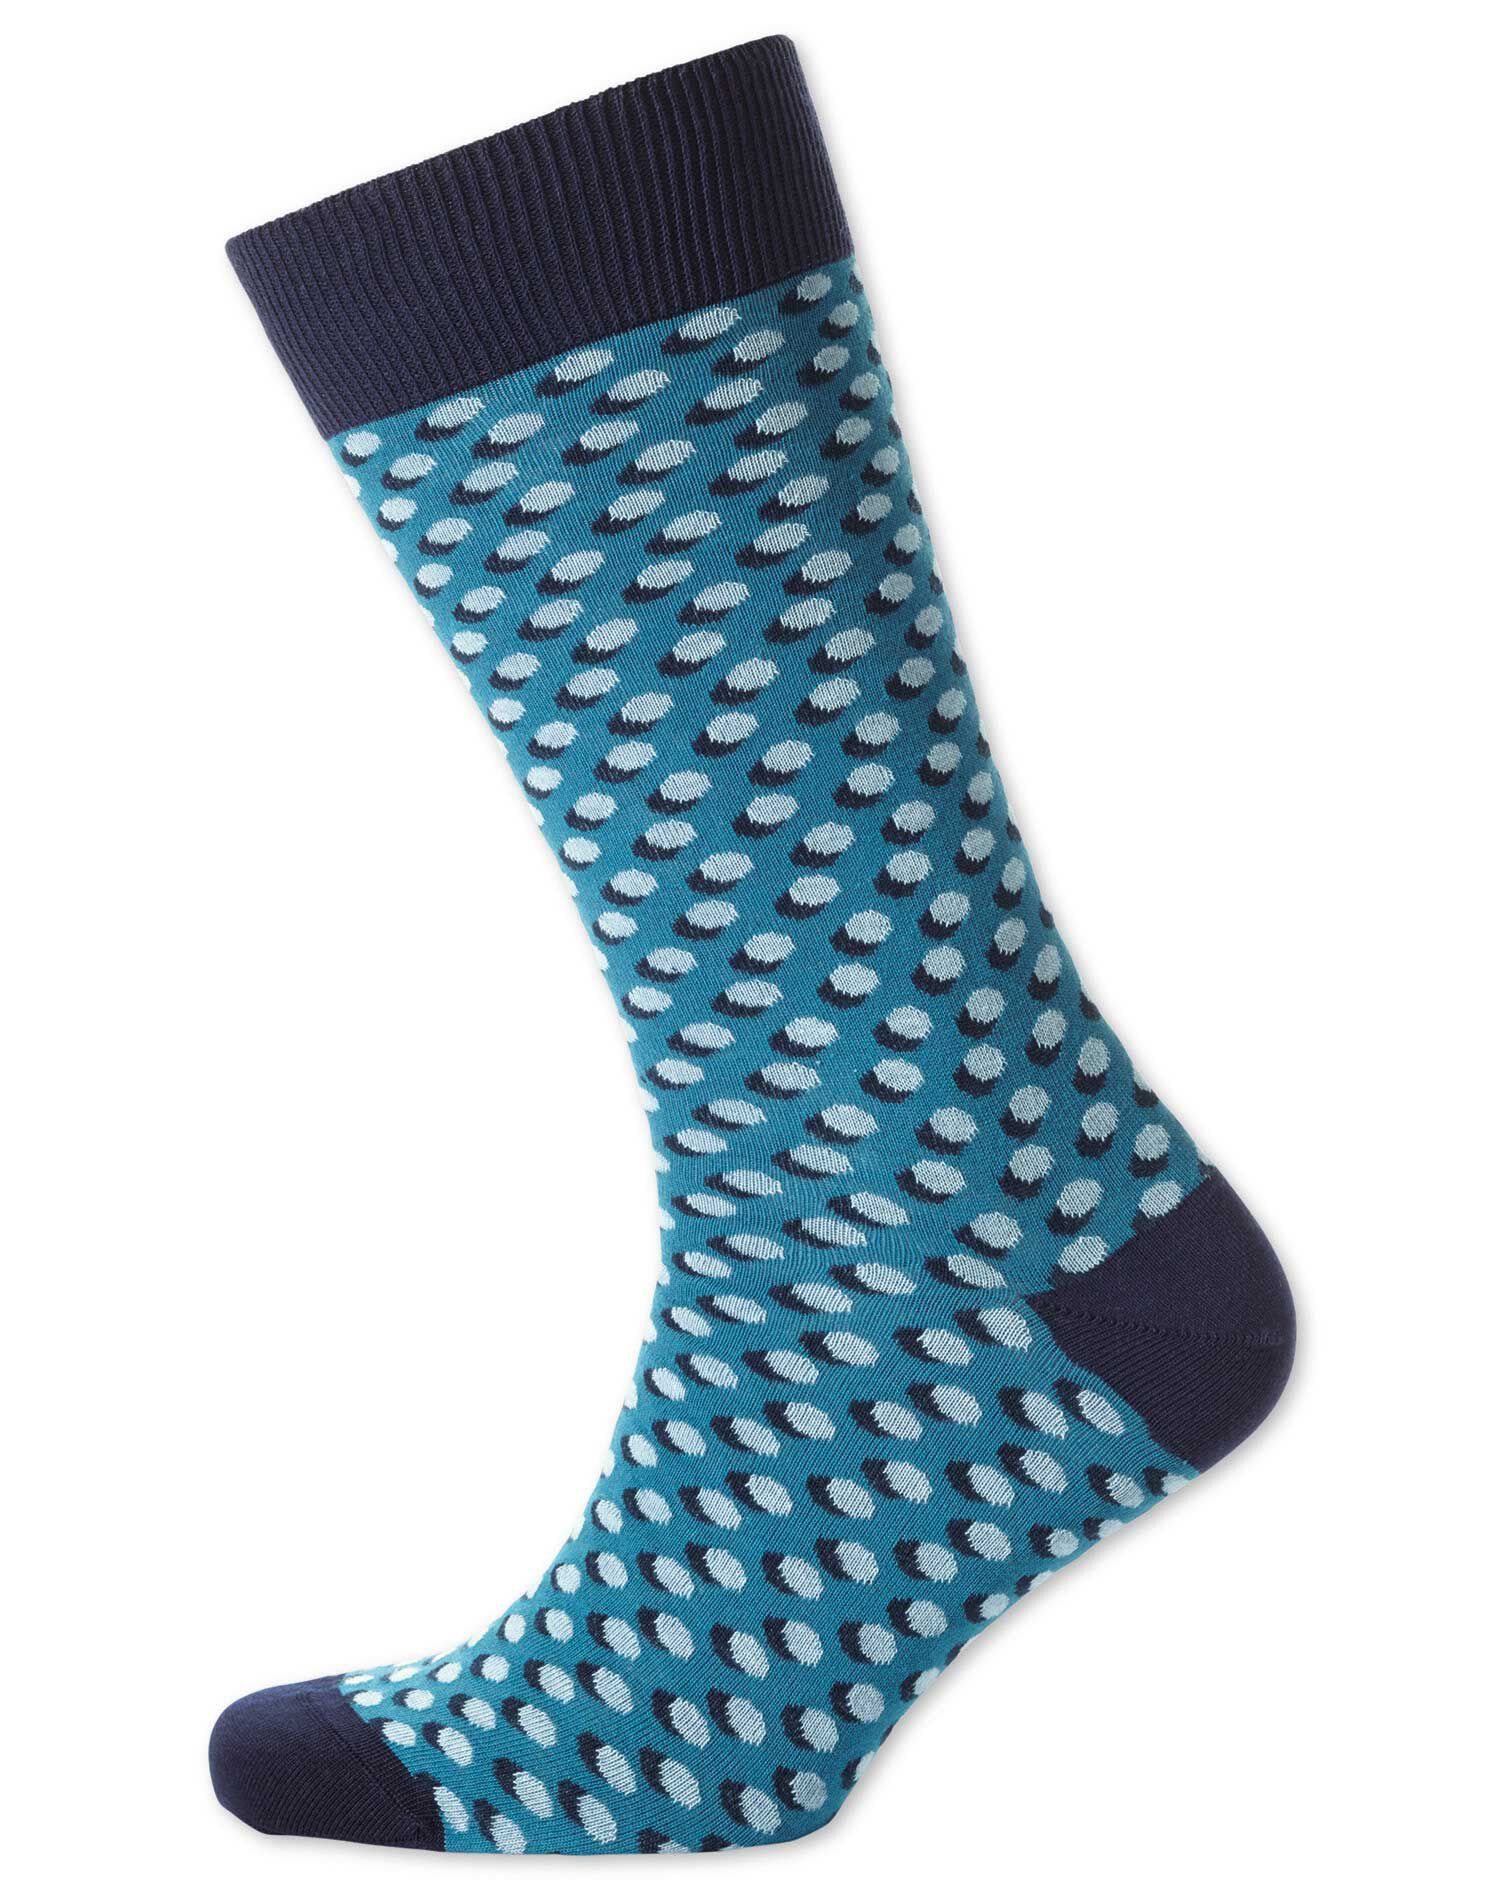 Blue Shadow Spot Socks Size Large by Charles Tyrwhitt